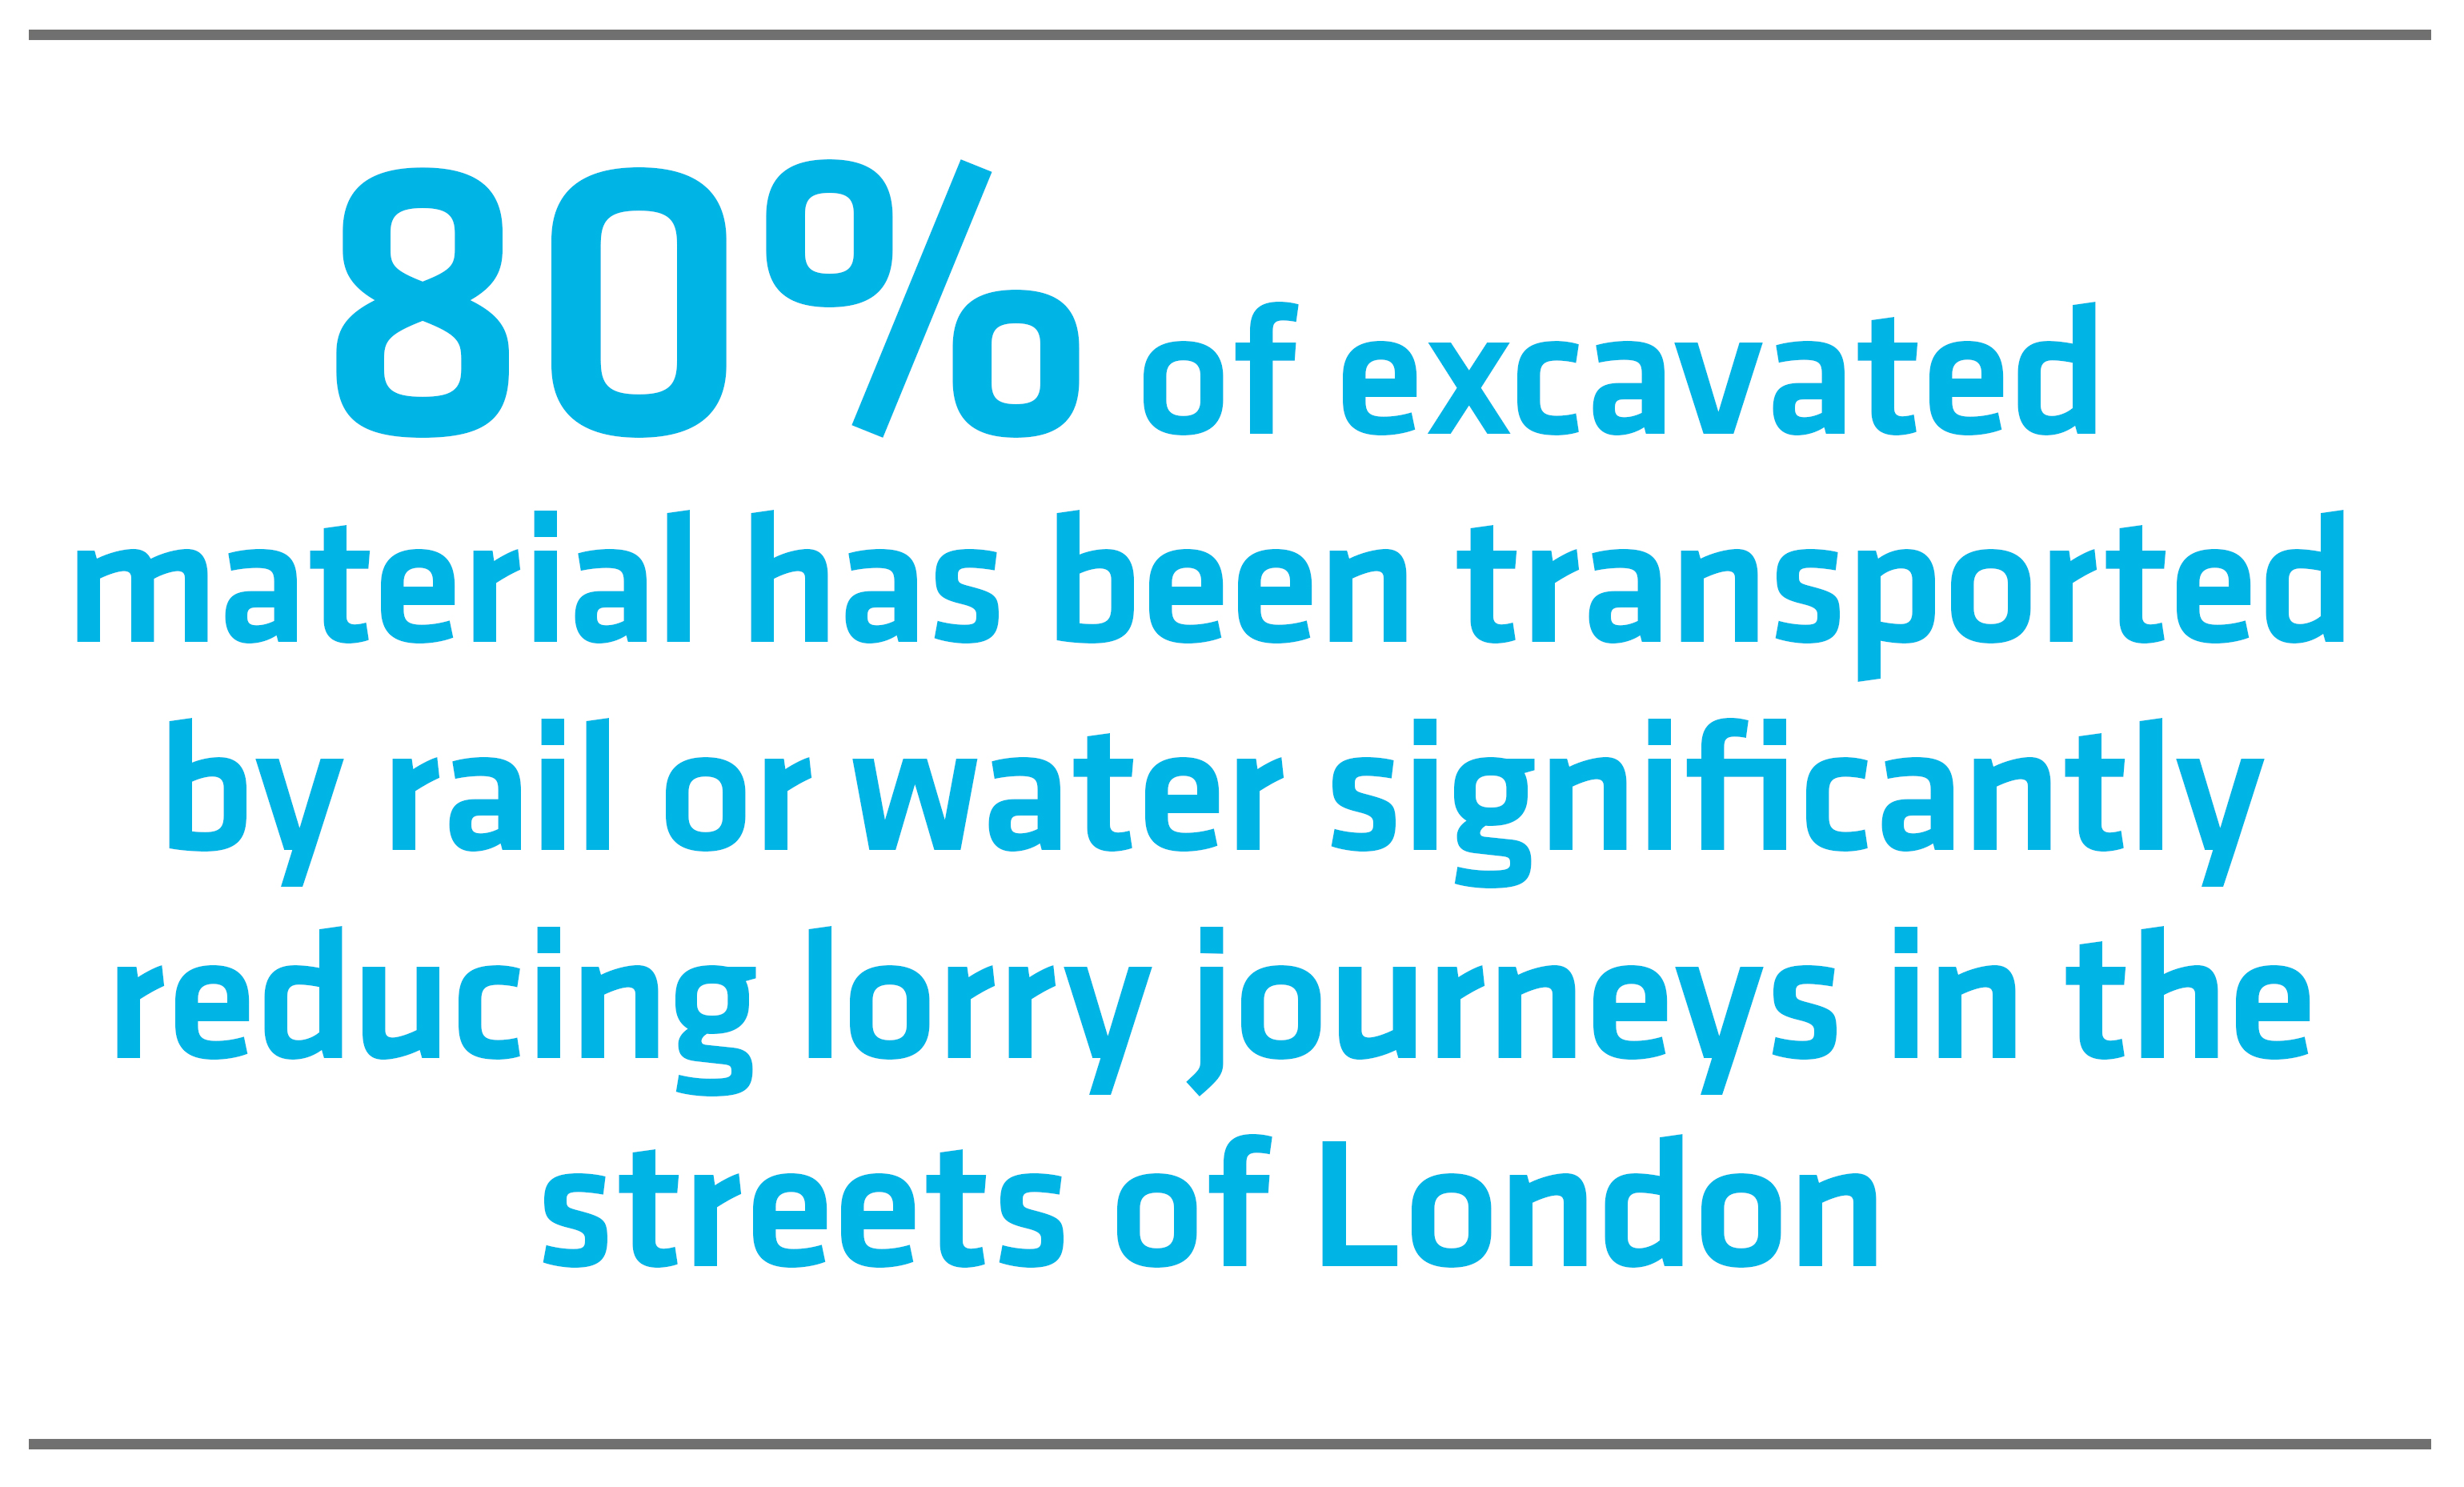 80% of excavated material has been transported by rail or water significantly reducing lorry journey